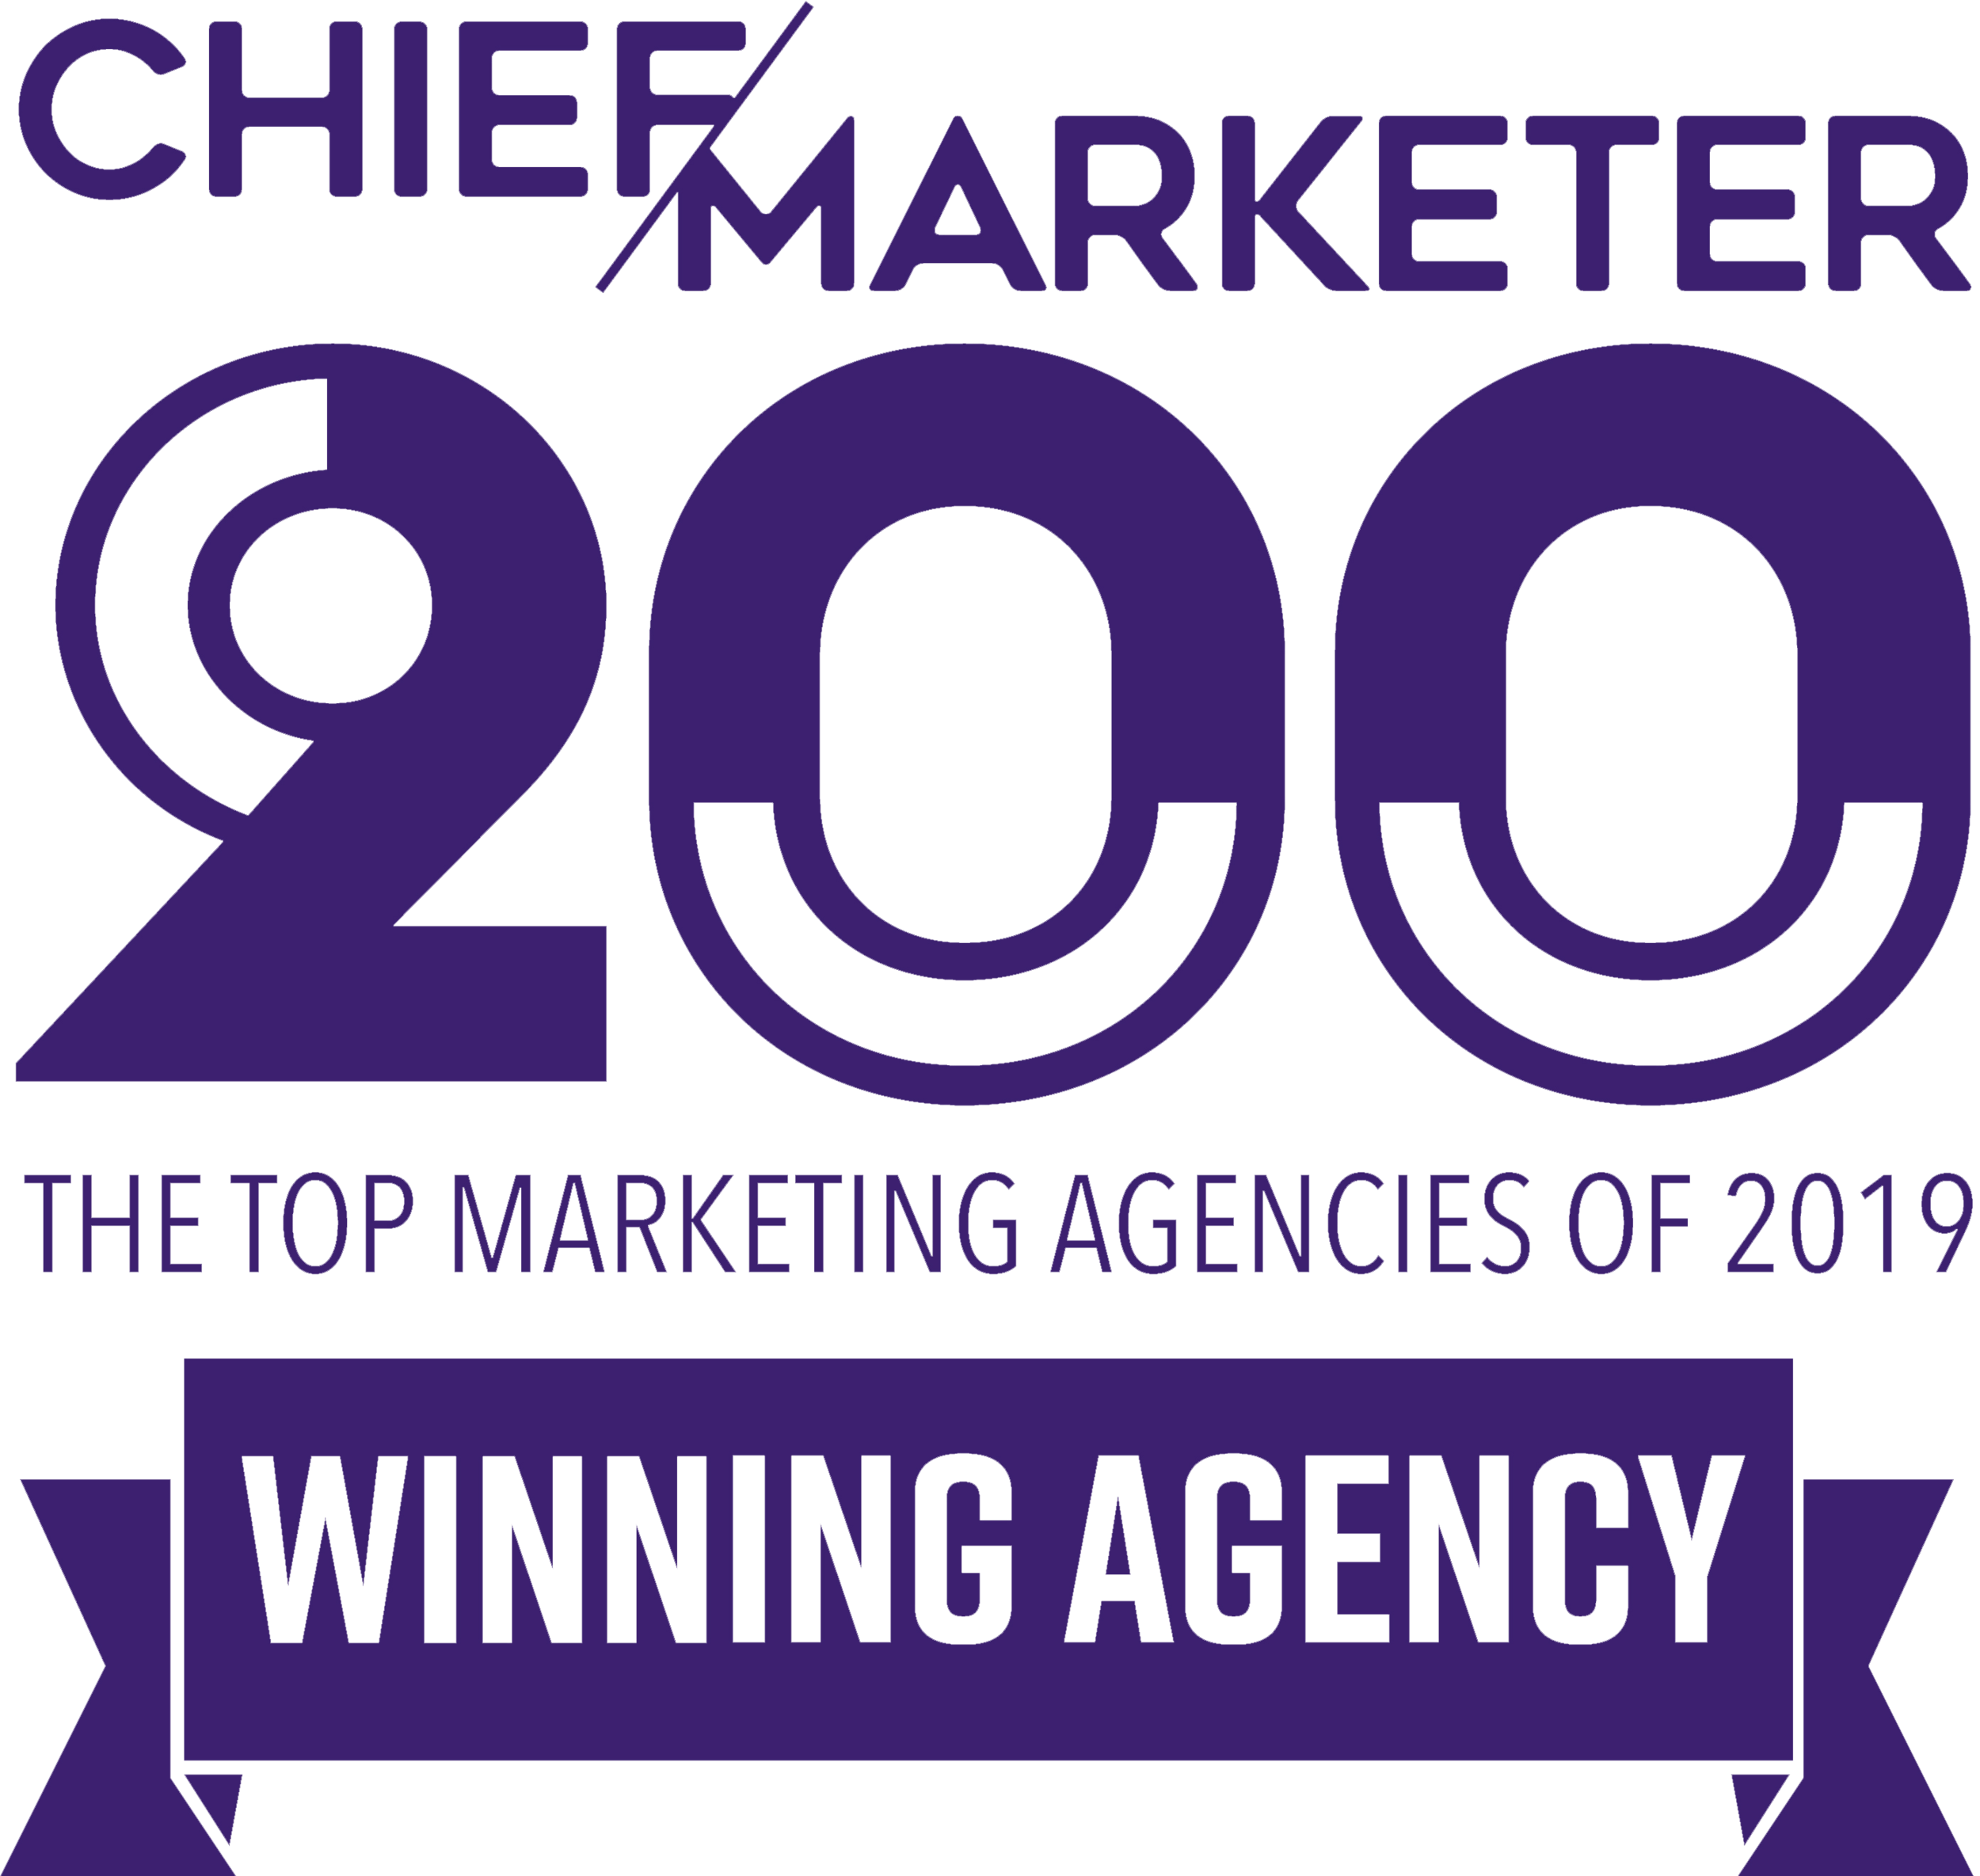 Kicking Cow Promotions is a 2019 Chief Marketer 200 winning agency.